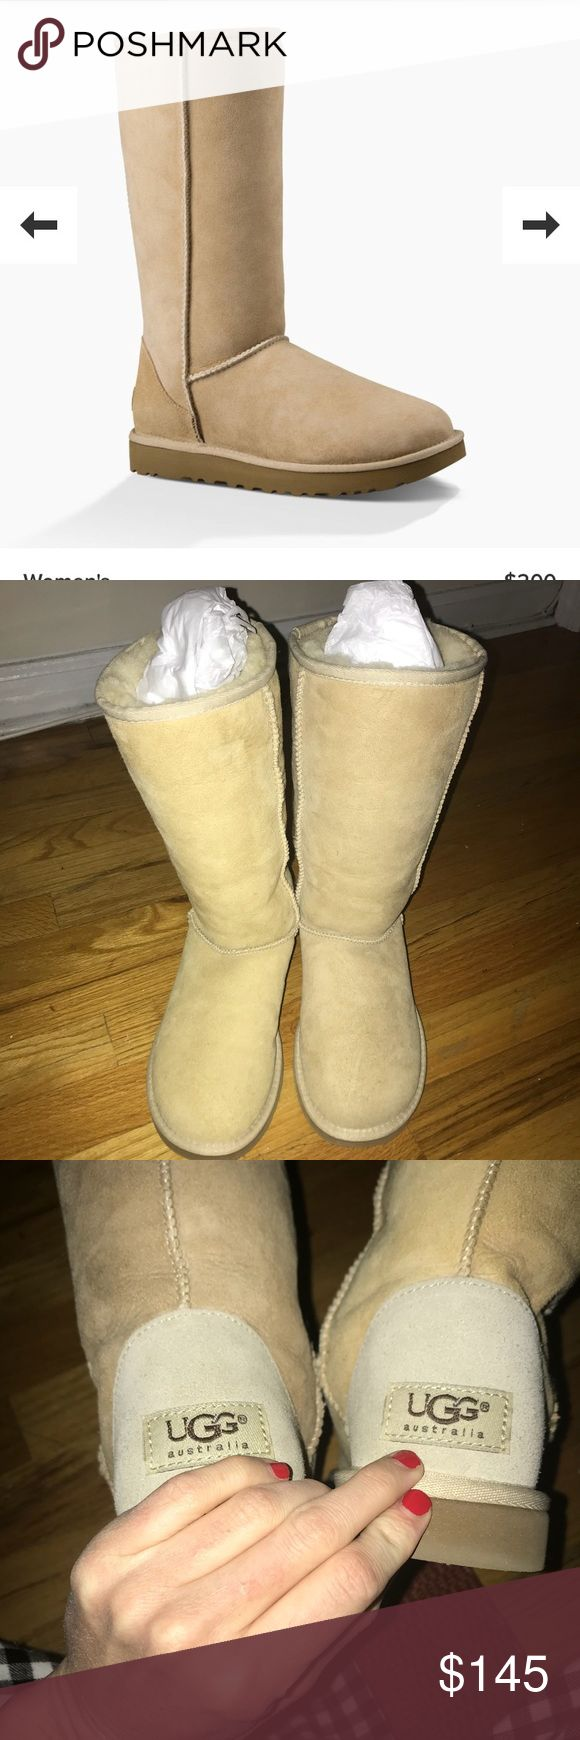 Brand new, Tall, UGG Boots Brand new! Never worn! My boyfriend bought me these boots and they don't fit me. They are a size 5, but will fit a size 6 or 5.5 or 5. Very versatile. He bought them at the UGG store in Manhattan for 200 dollars. I️ have never worn these boots they are brand new. UGG Shoes